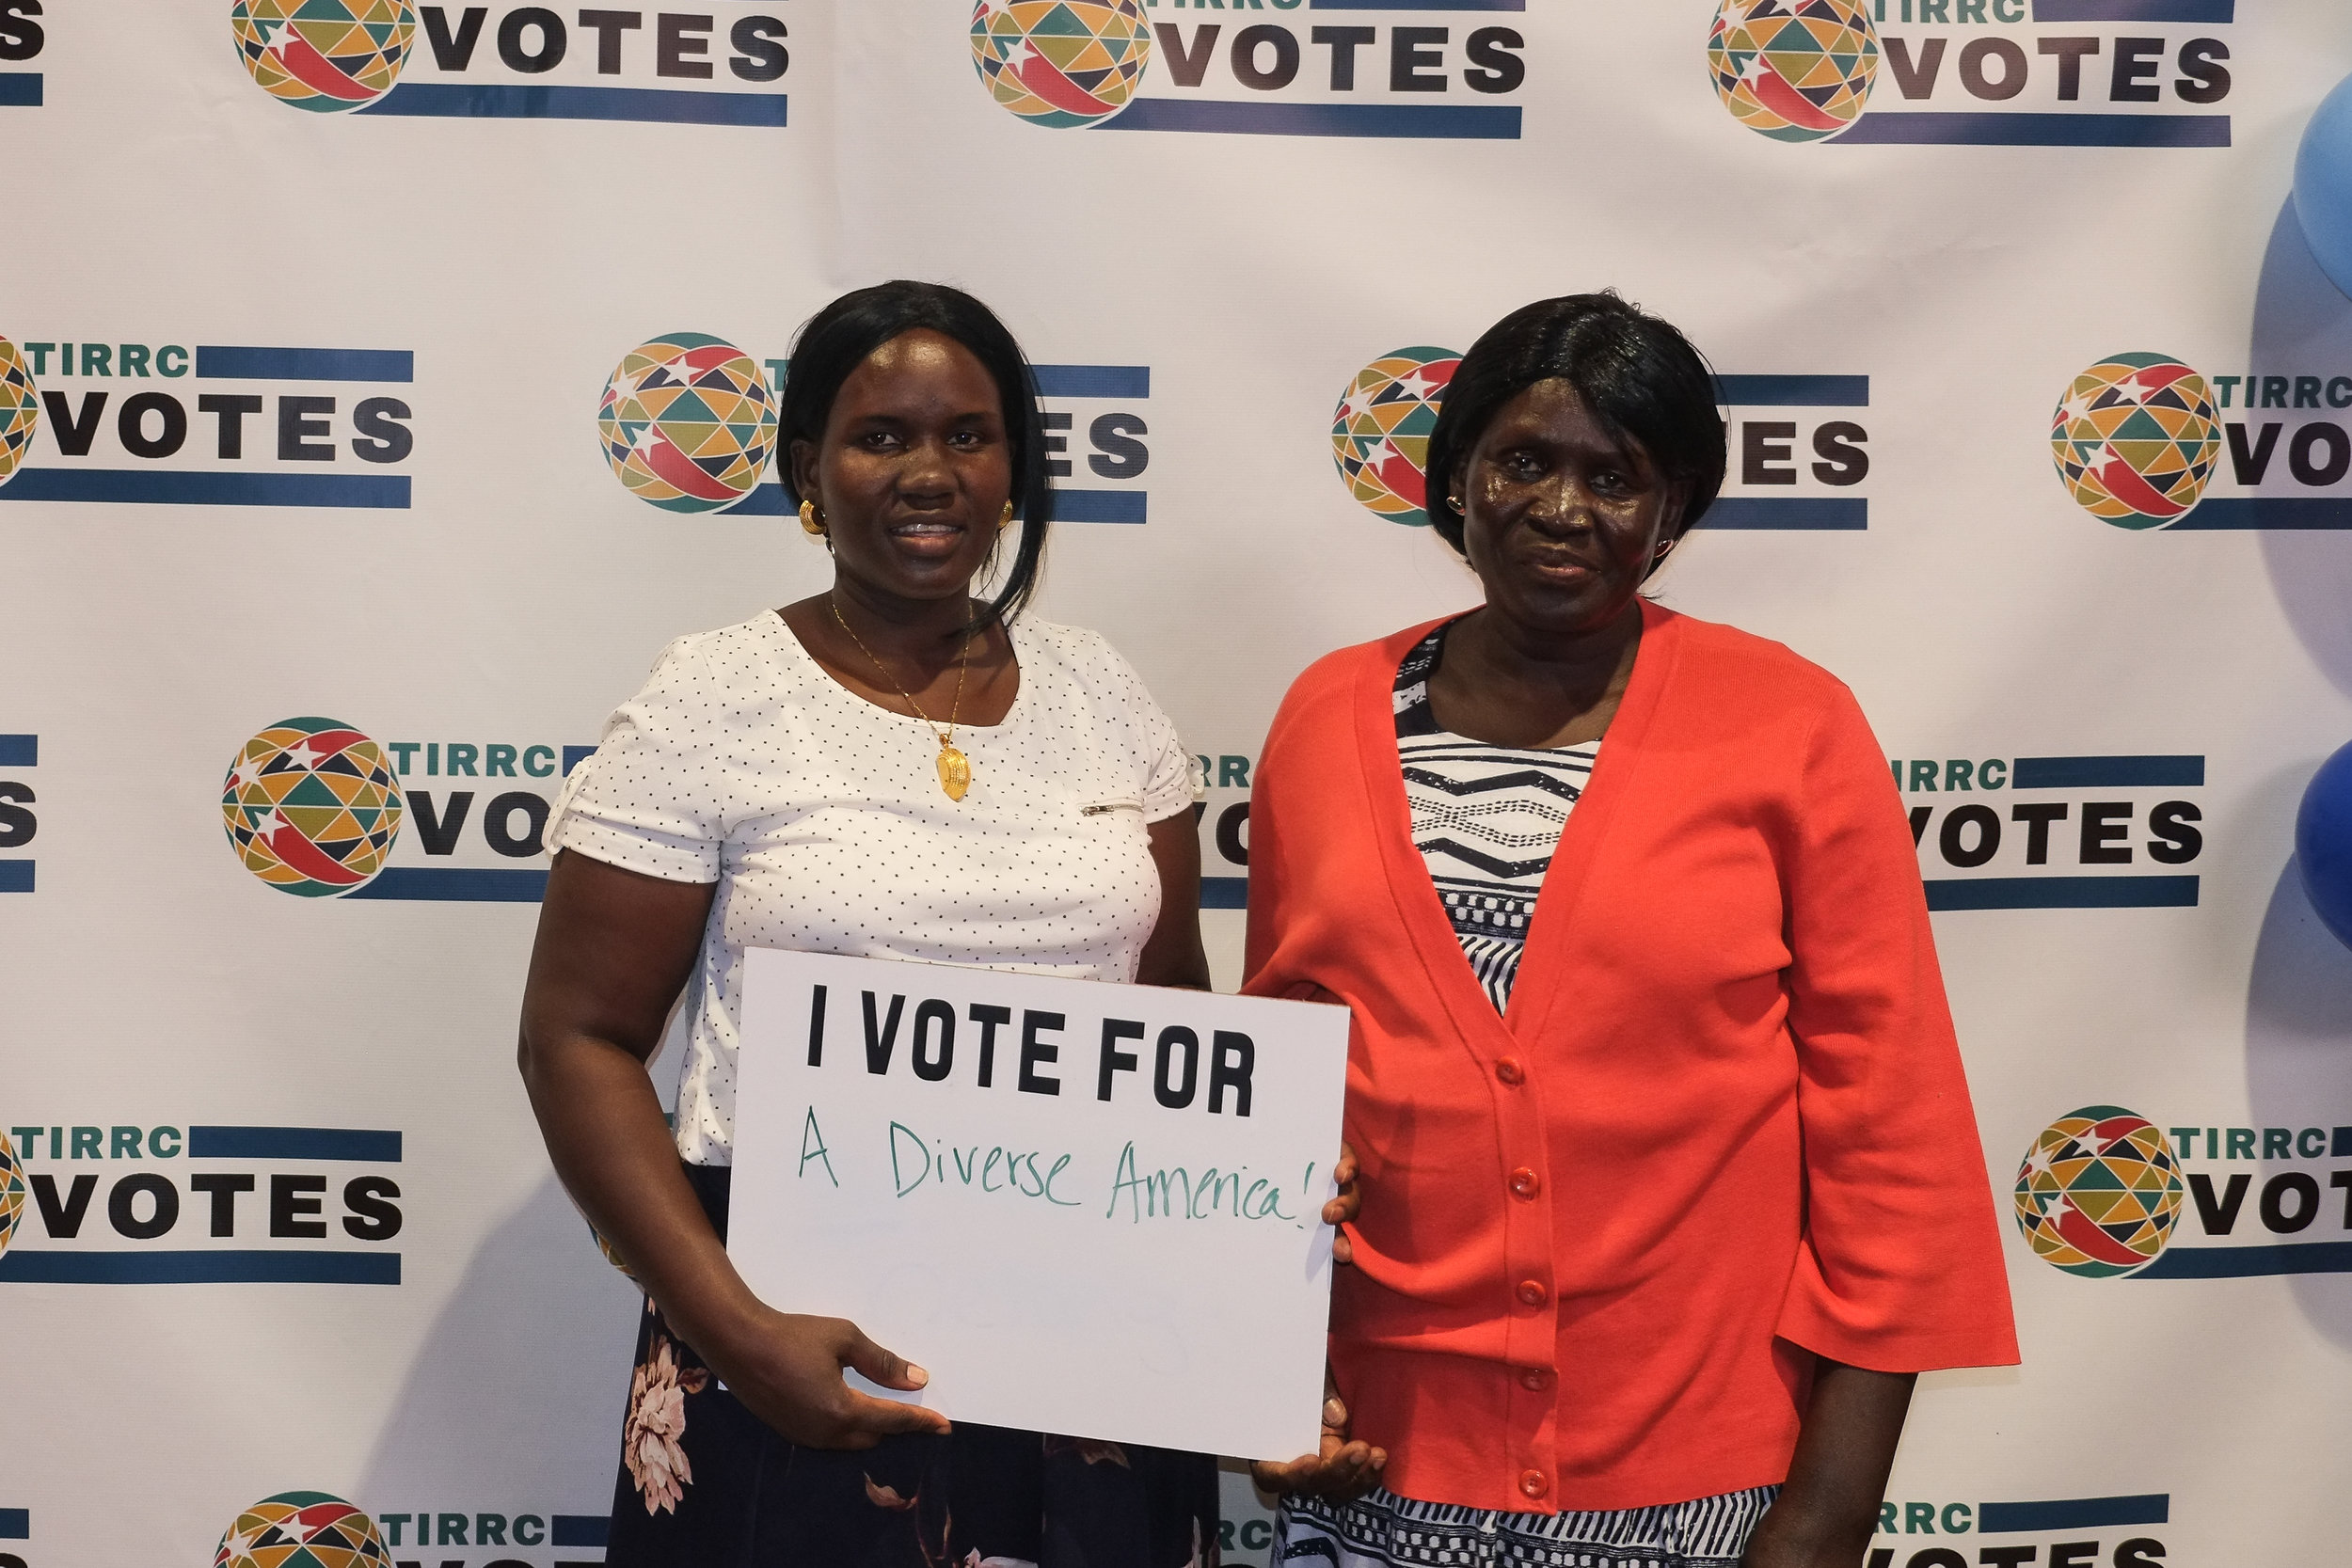 TIRRCVotes-PhotoBooth-27.jpg